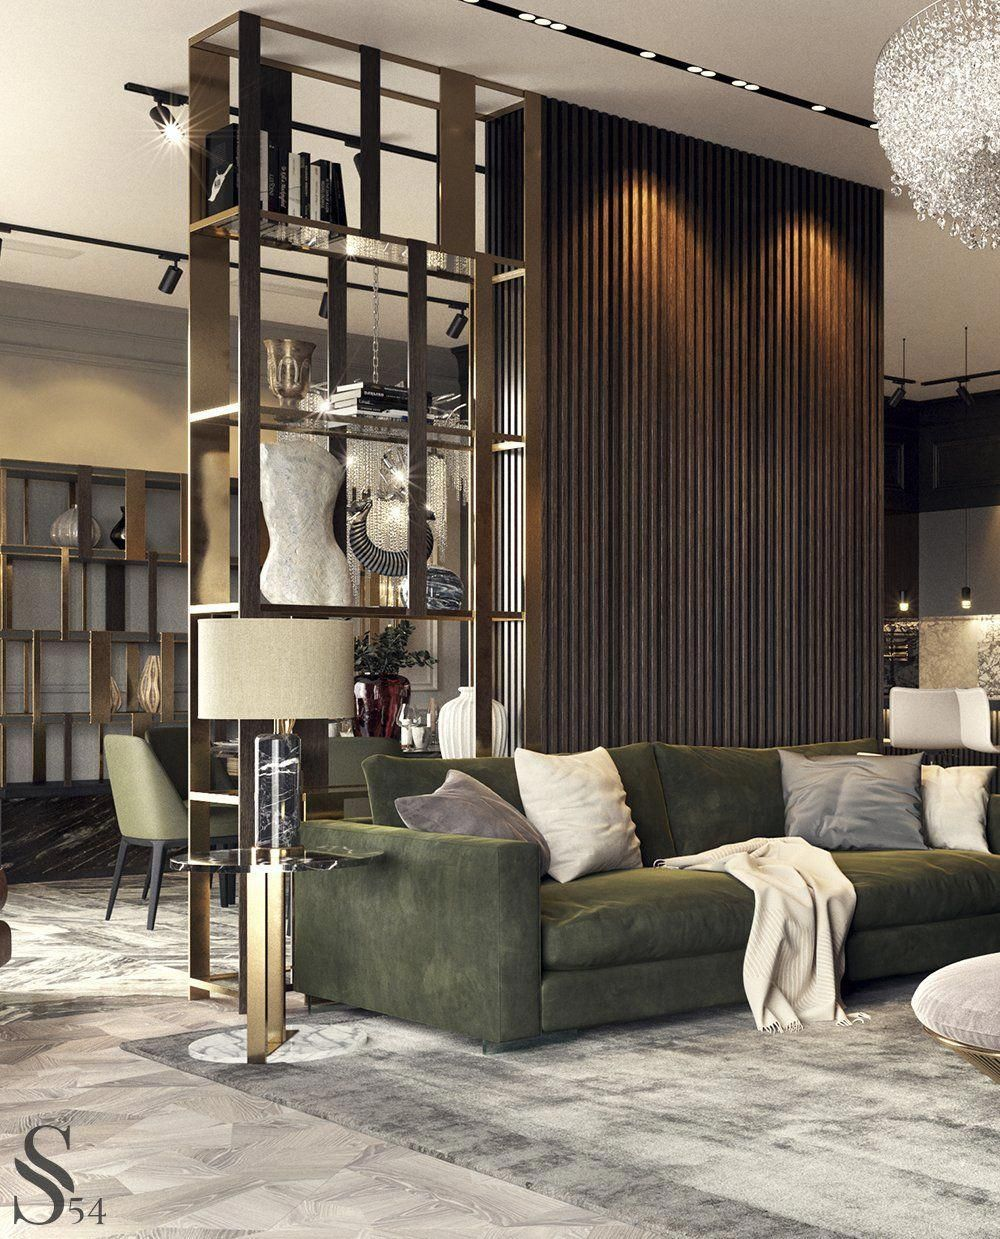 Pin On Interior Design Ideas